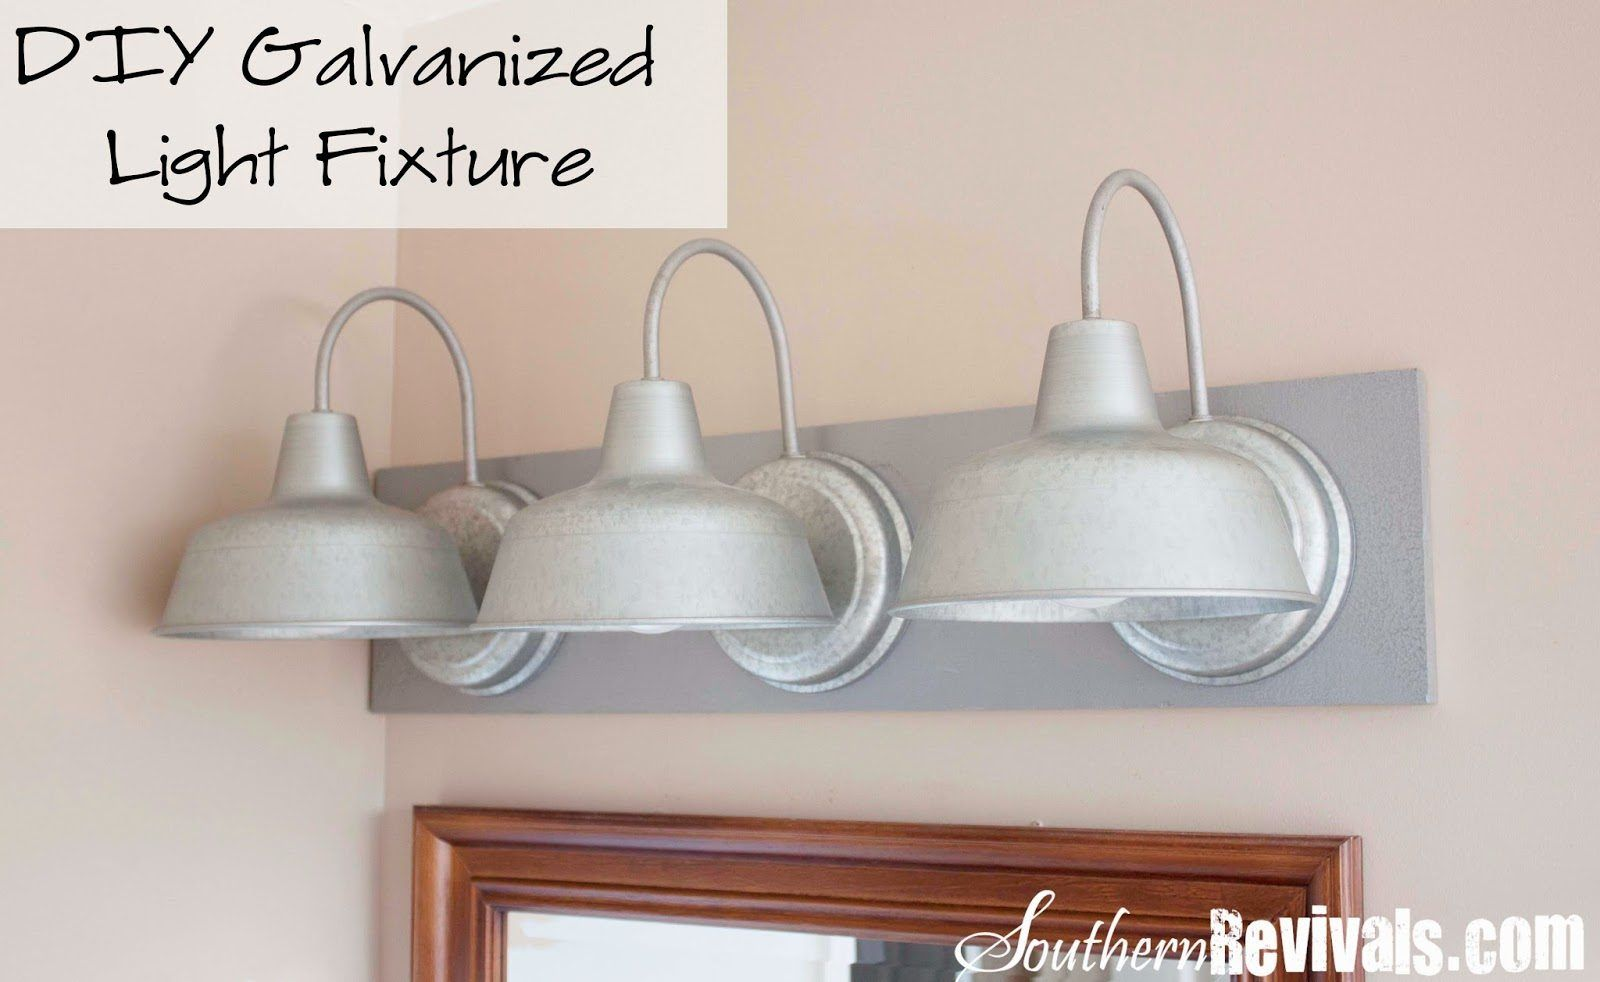 How To Install Bathroom Light Fixture Junction Box Change